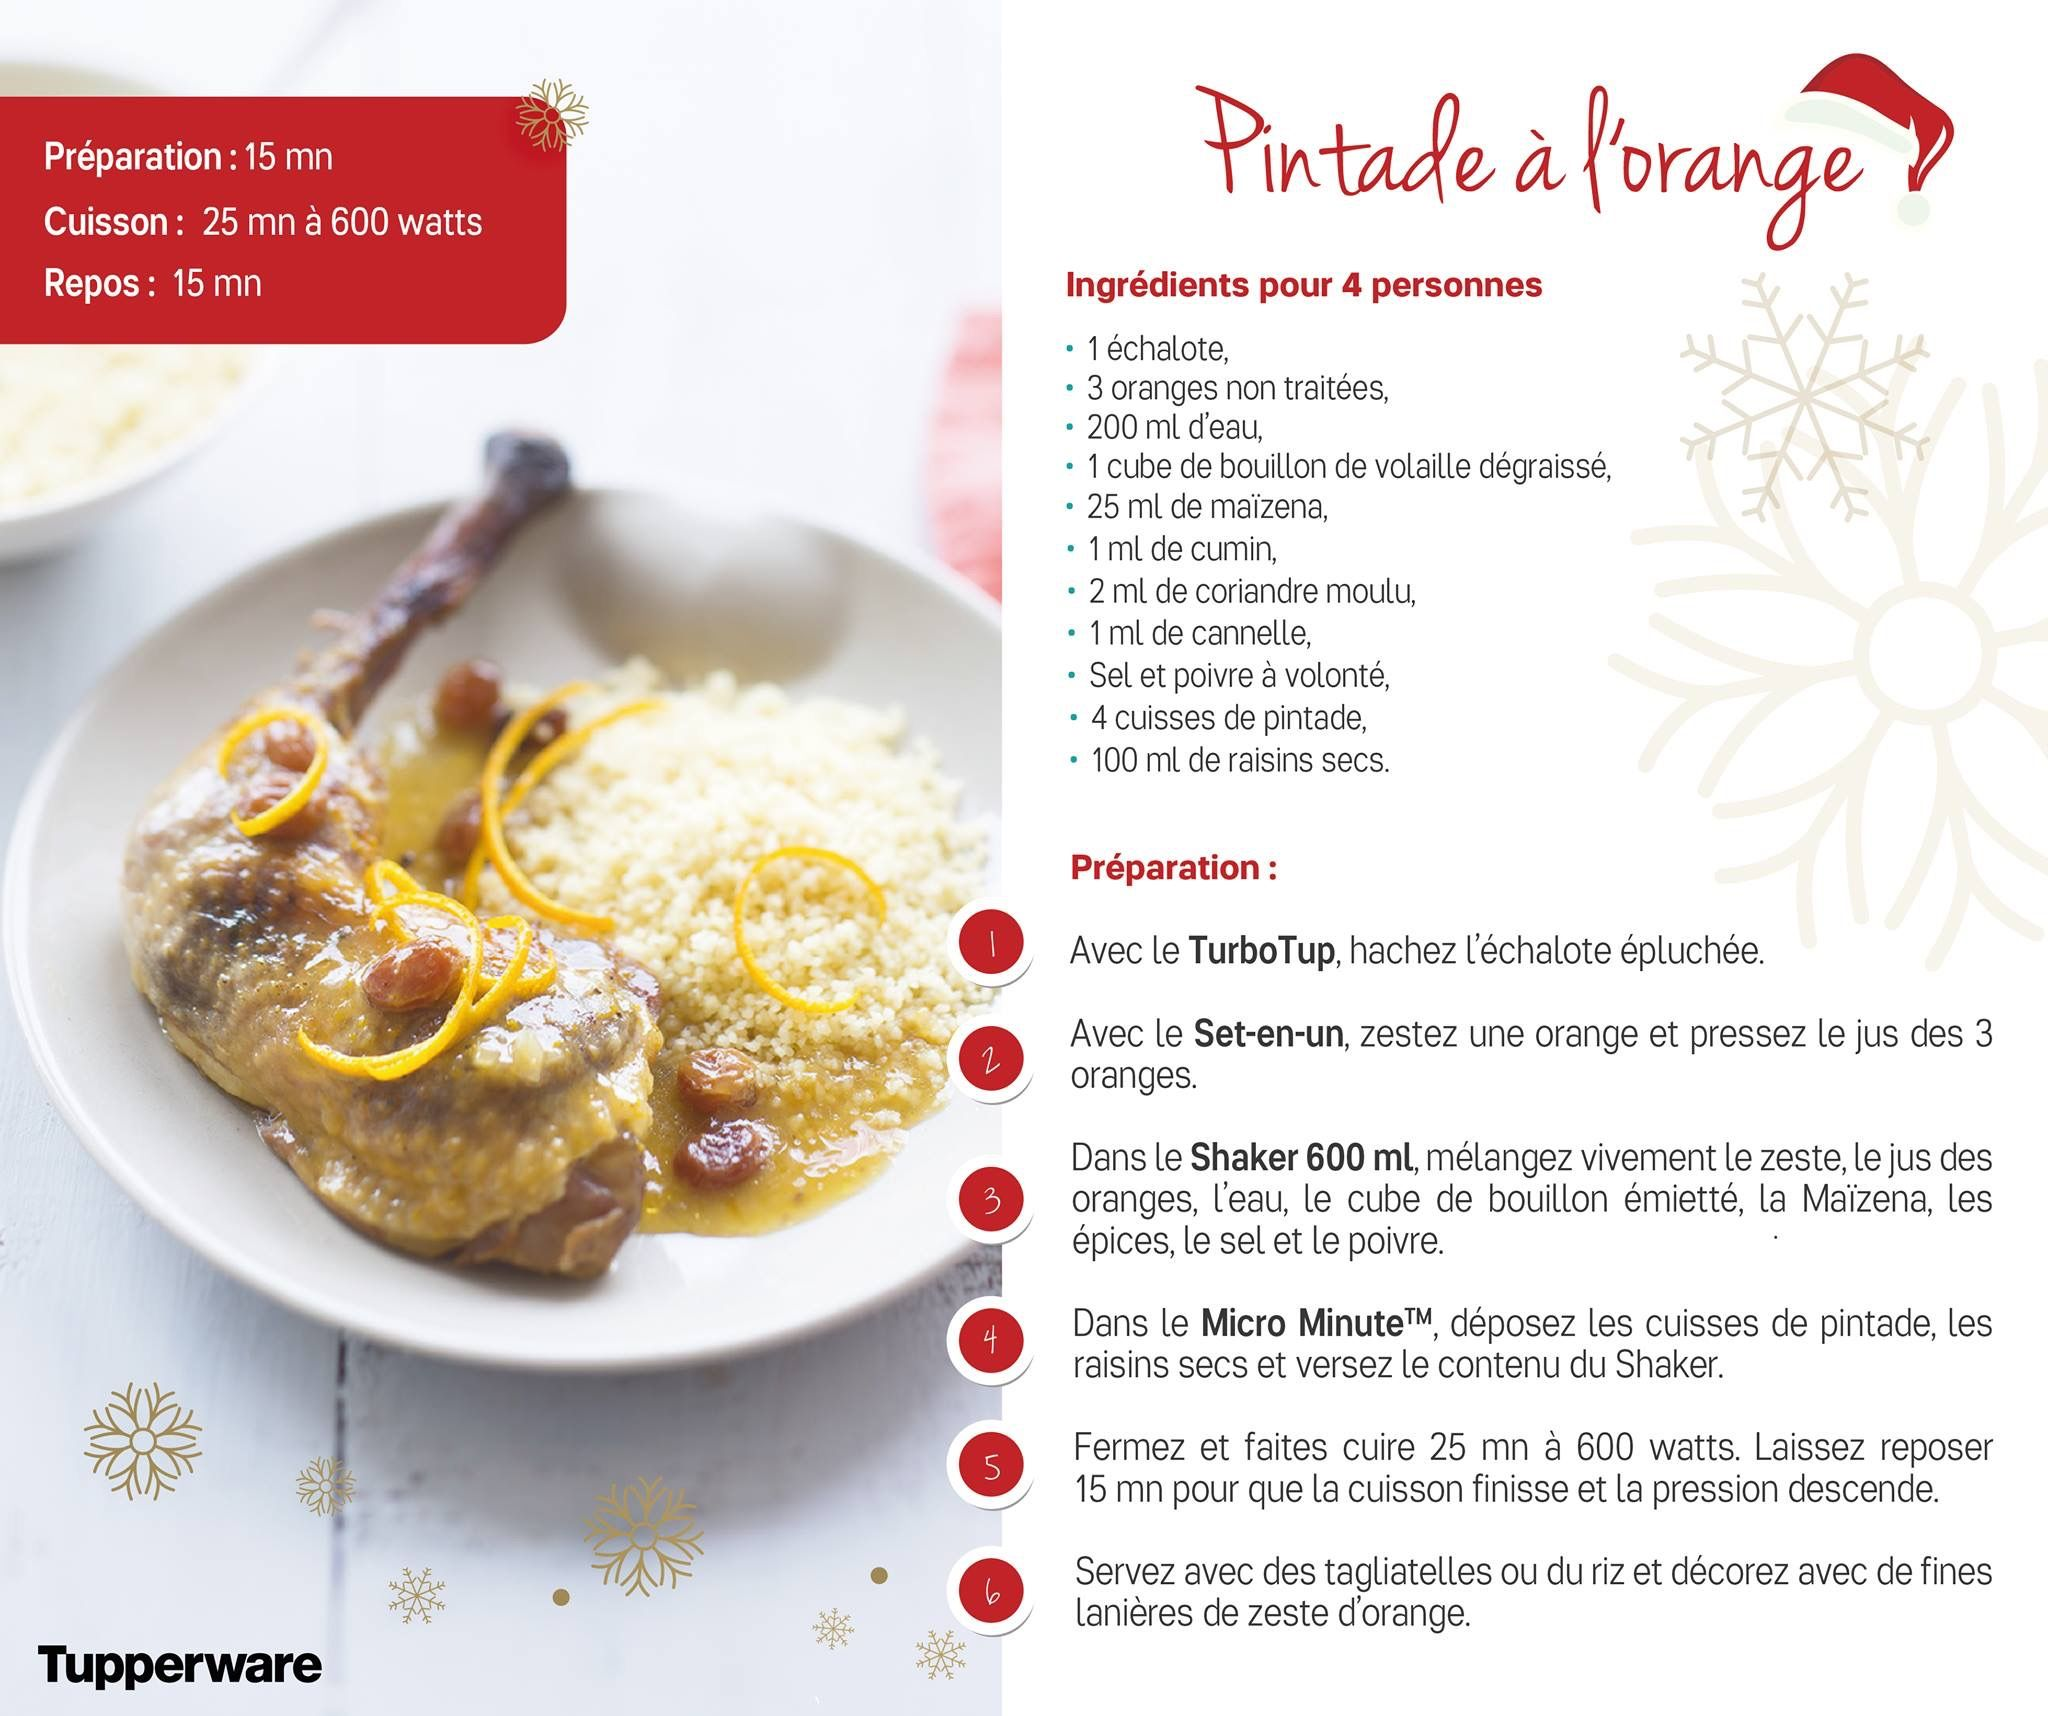 Recette de pintade l 39 orange la micro minute par tupperware volaille pinterest food - Micro minute tupperware recette ...